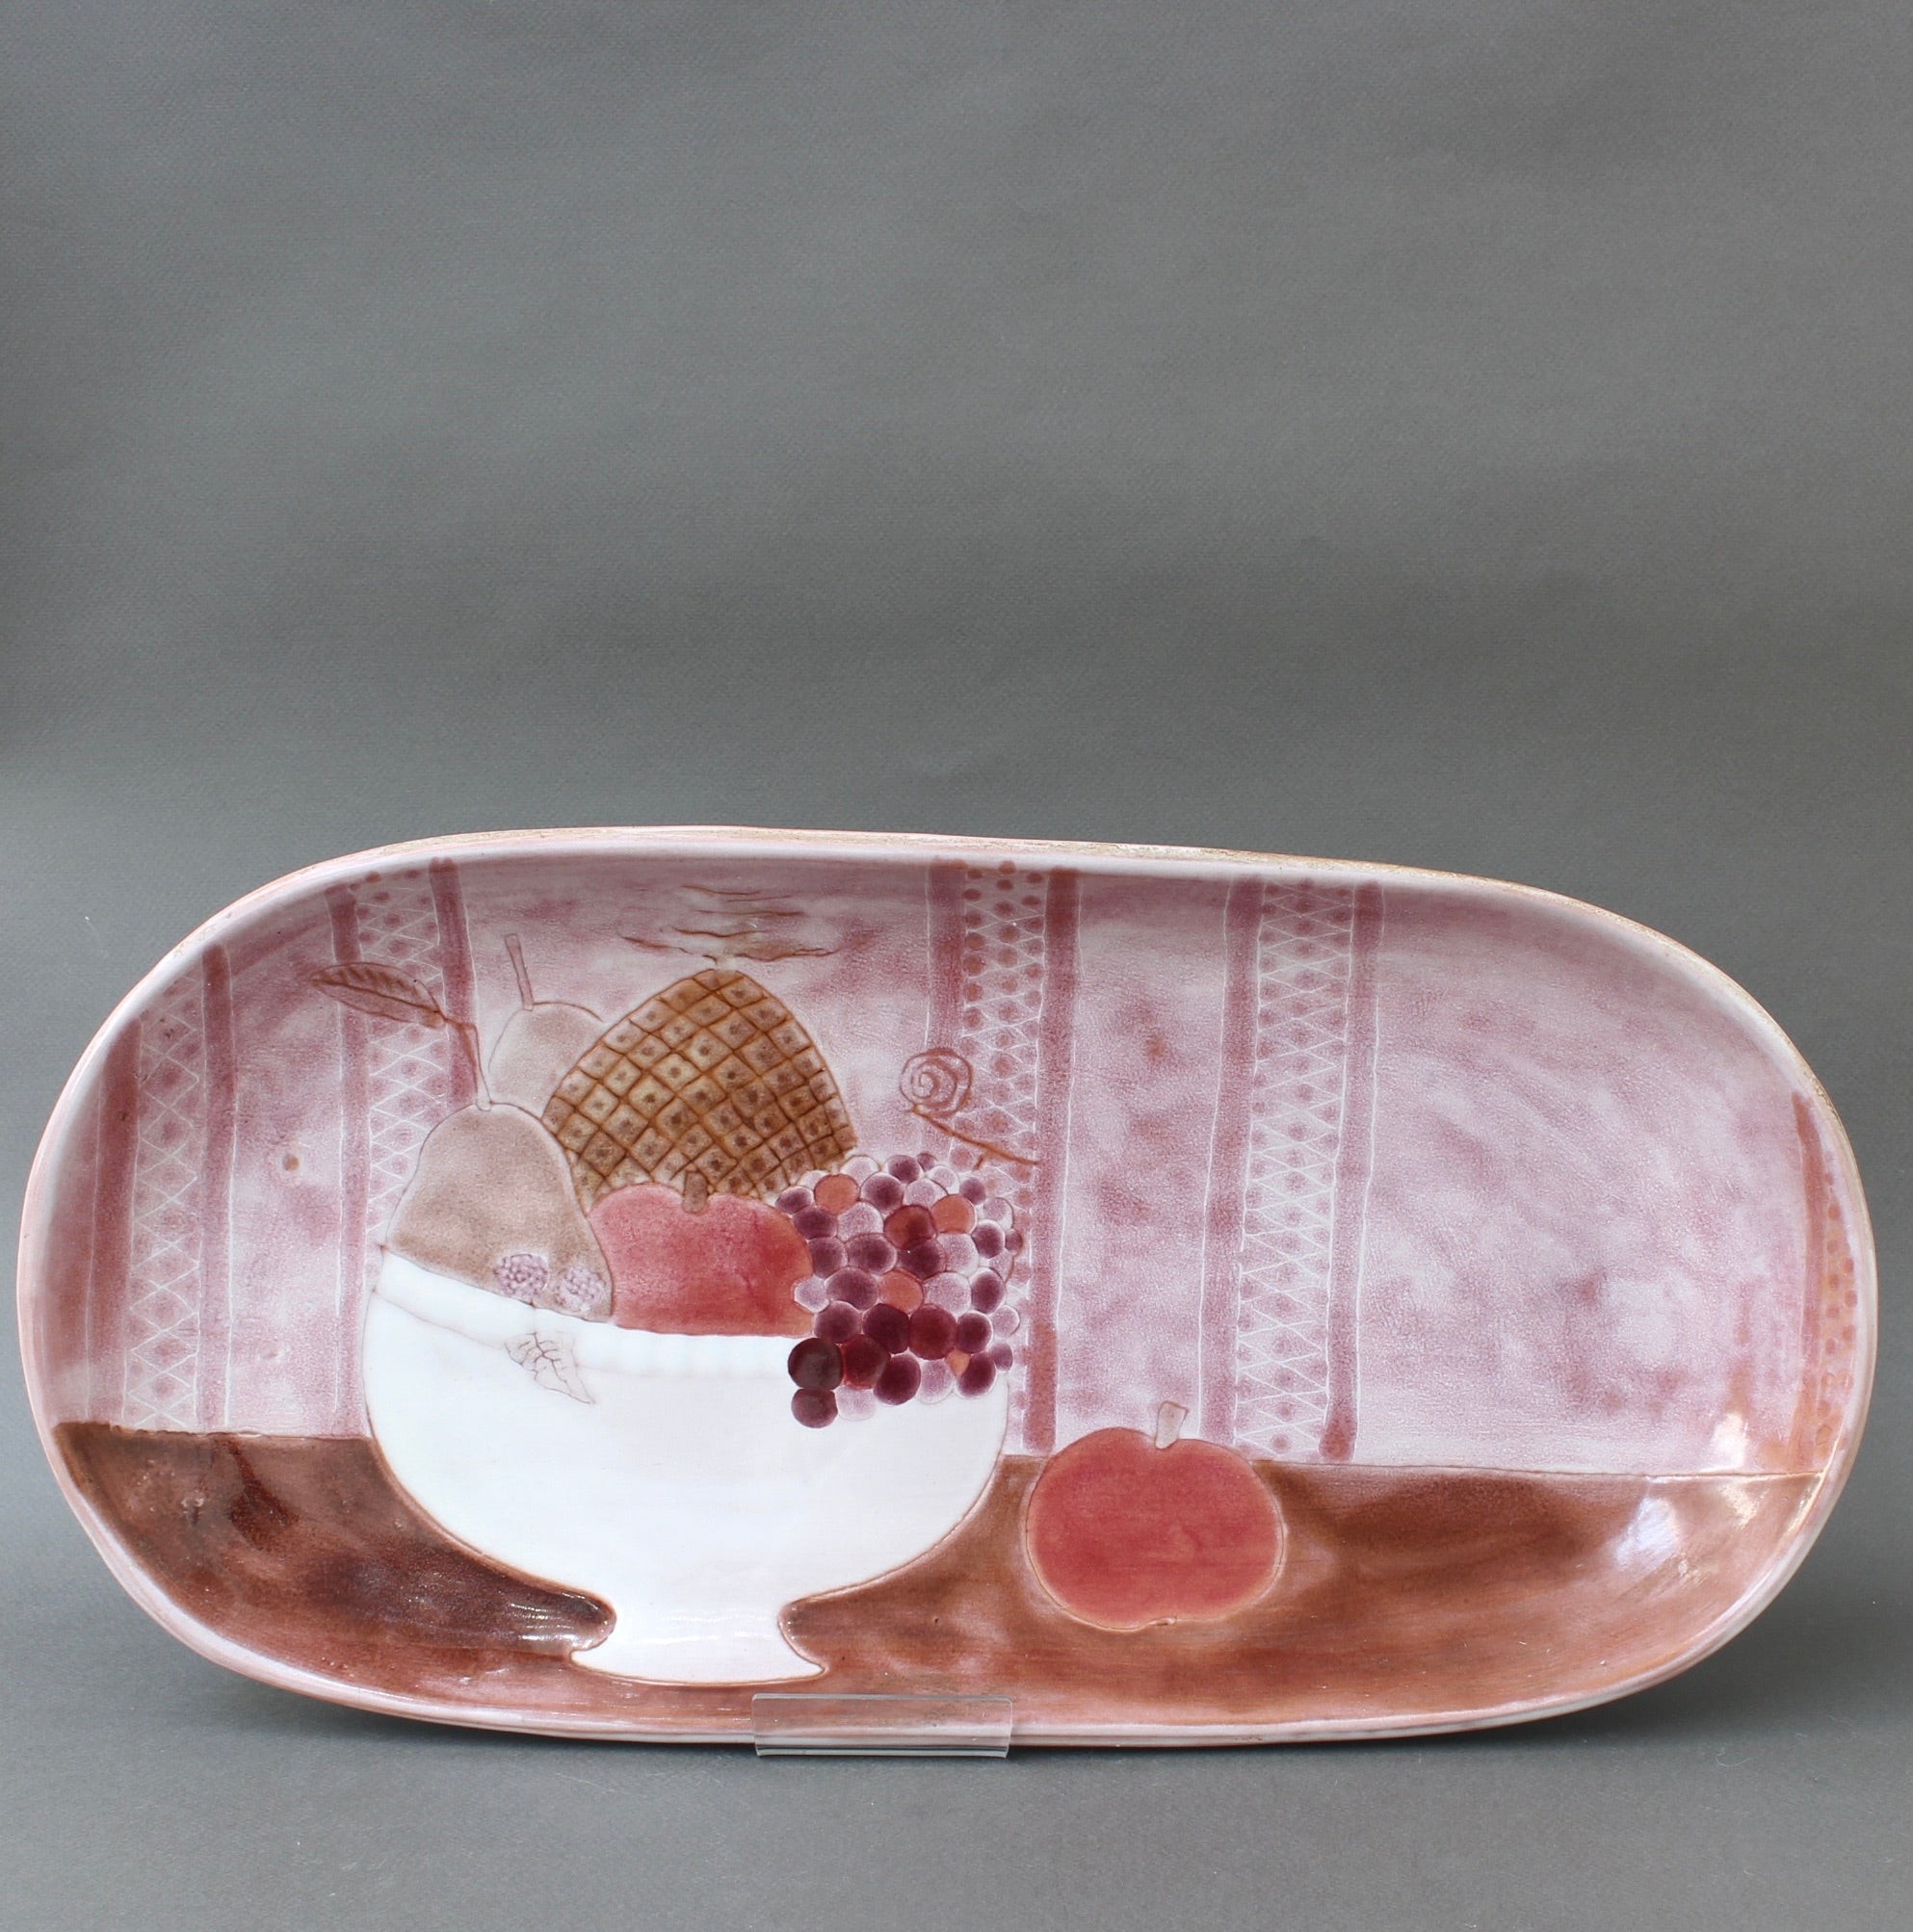 French Pink Decorative Ceramic Tray with Still Life Motif by Frères Cloutier (circa 1960s)